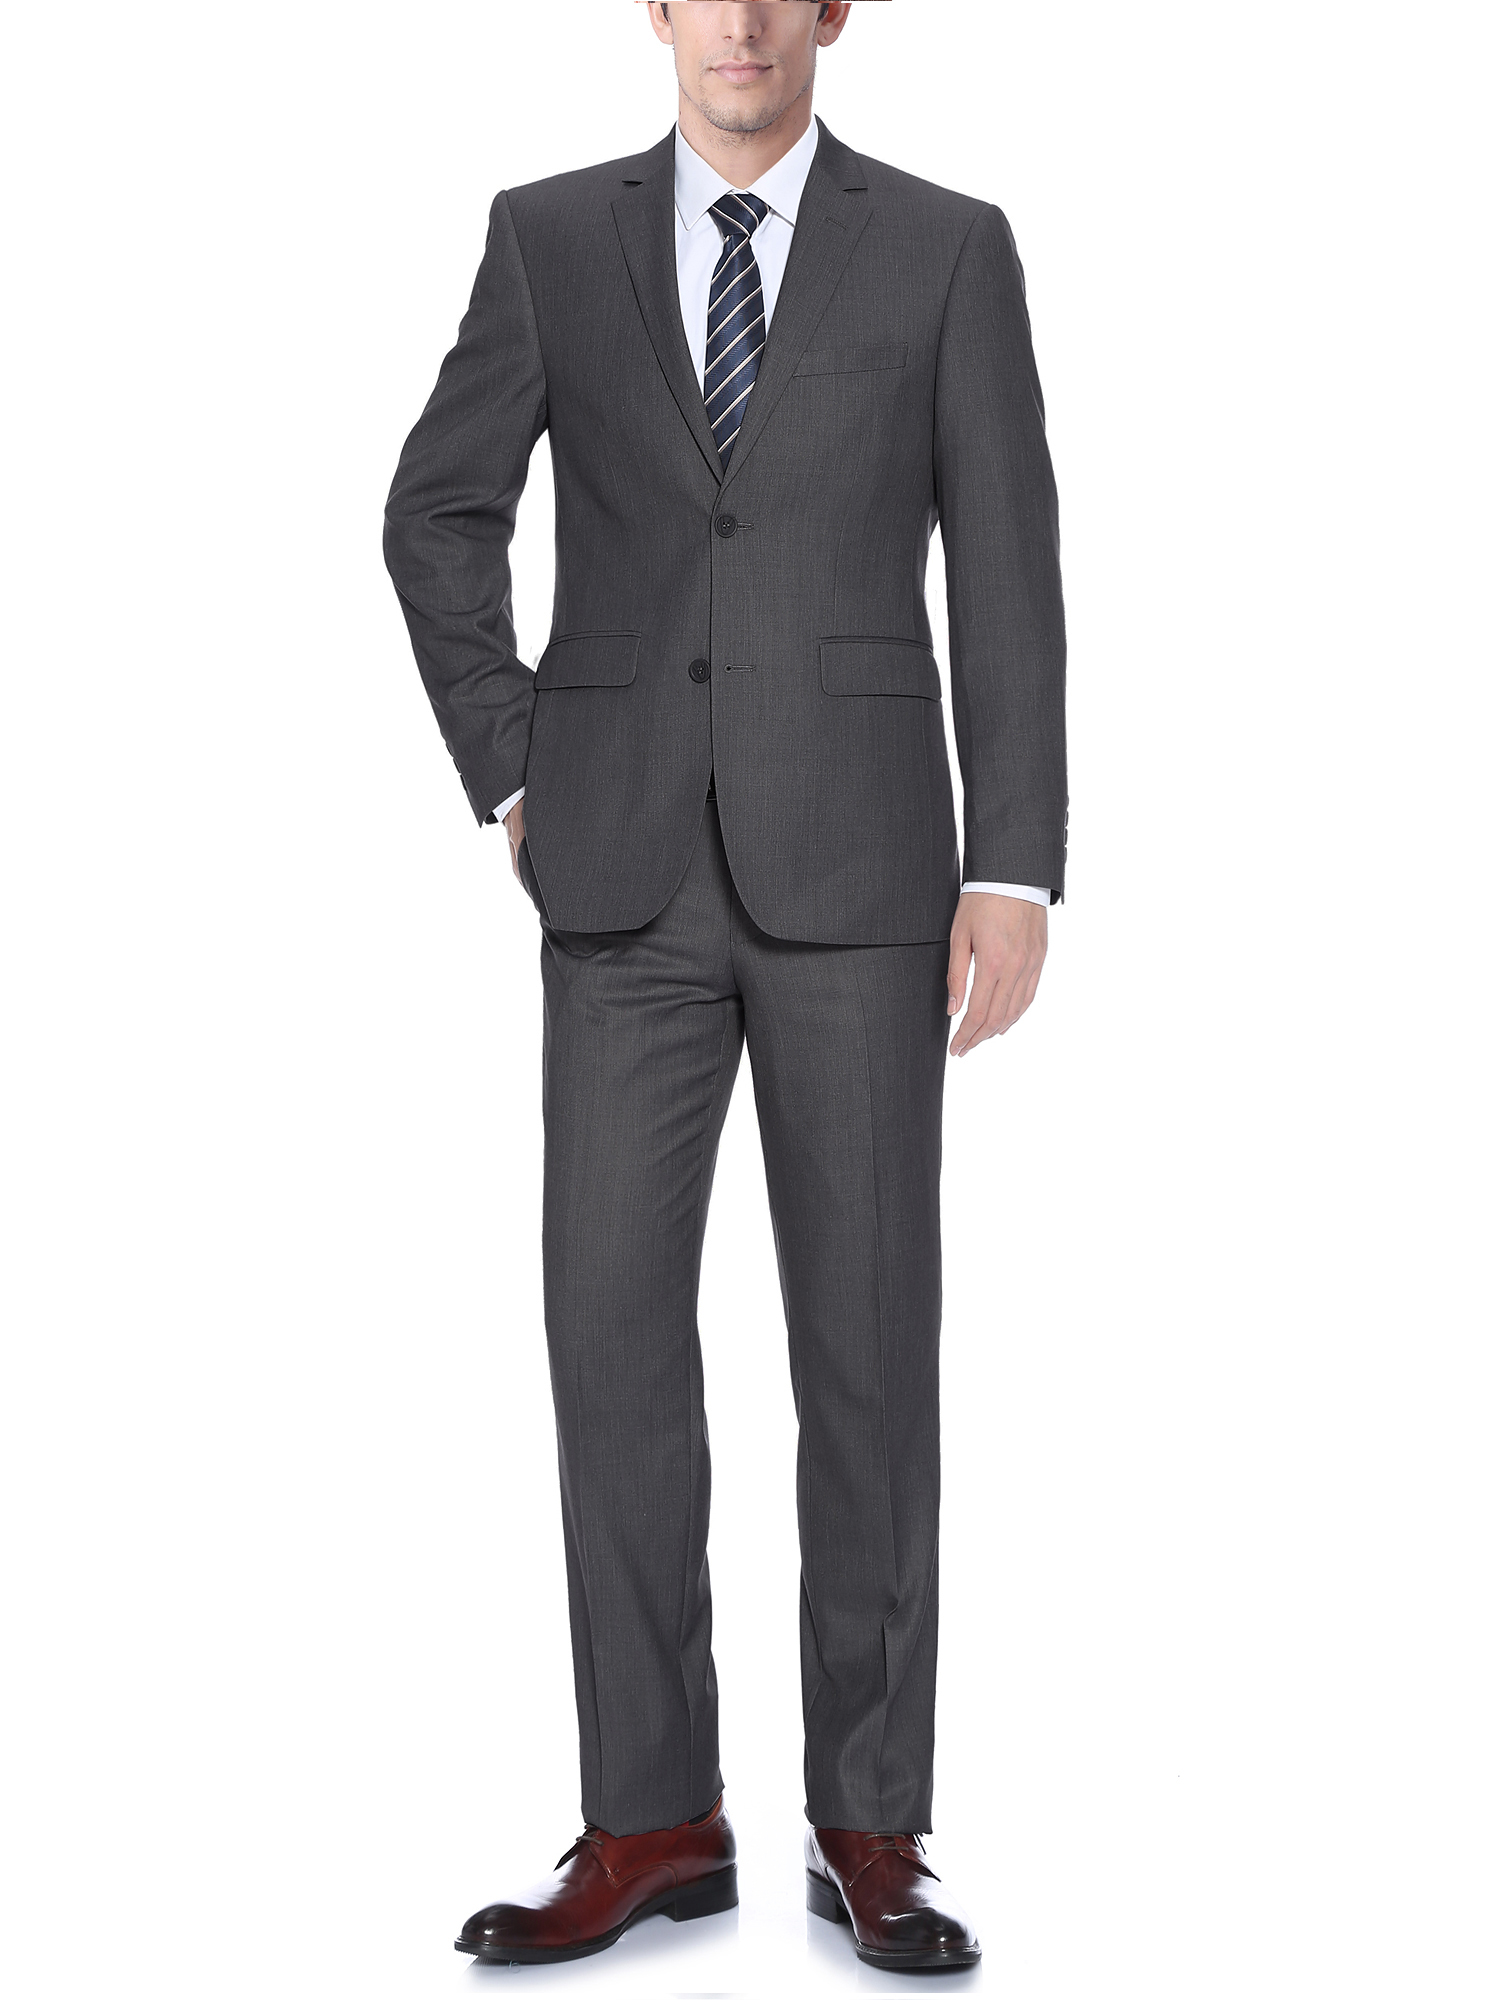 Barzetti Men's Dark Grey Classic Fit Italian Styled Two Piece Suit